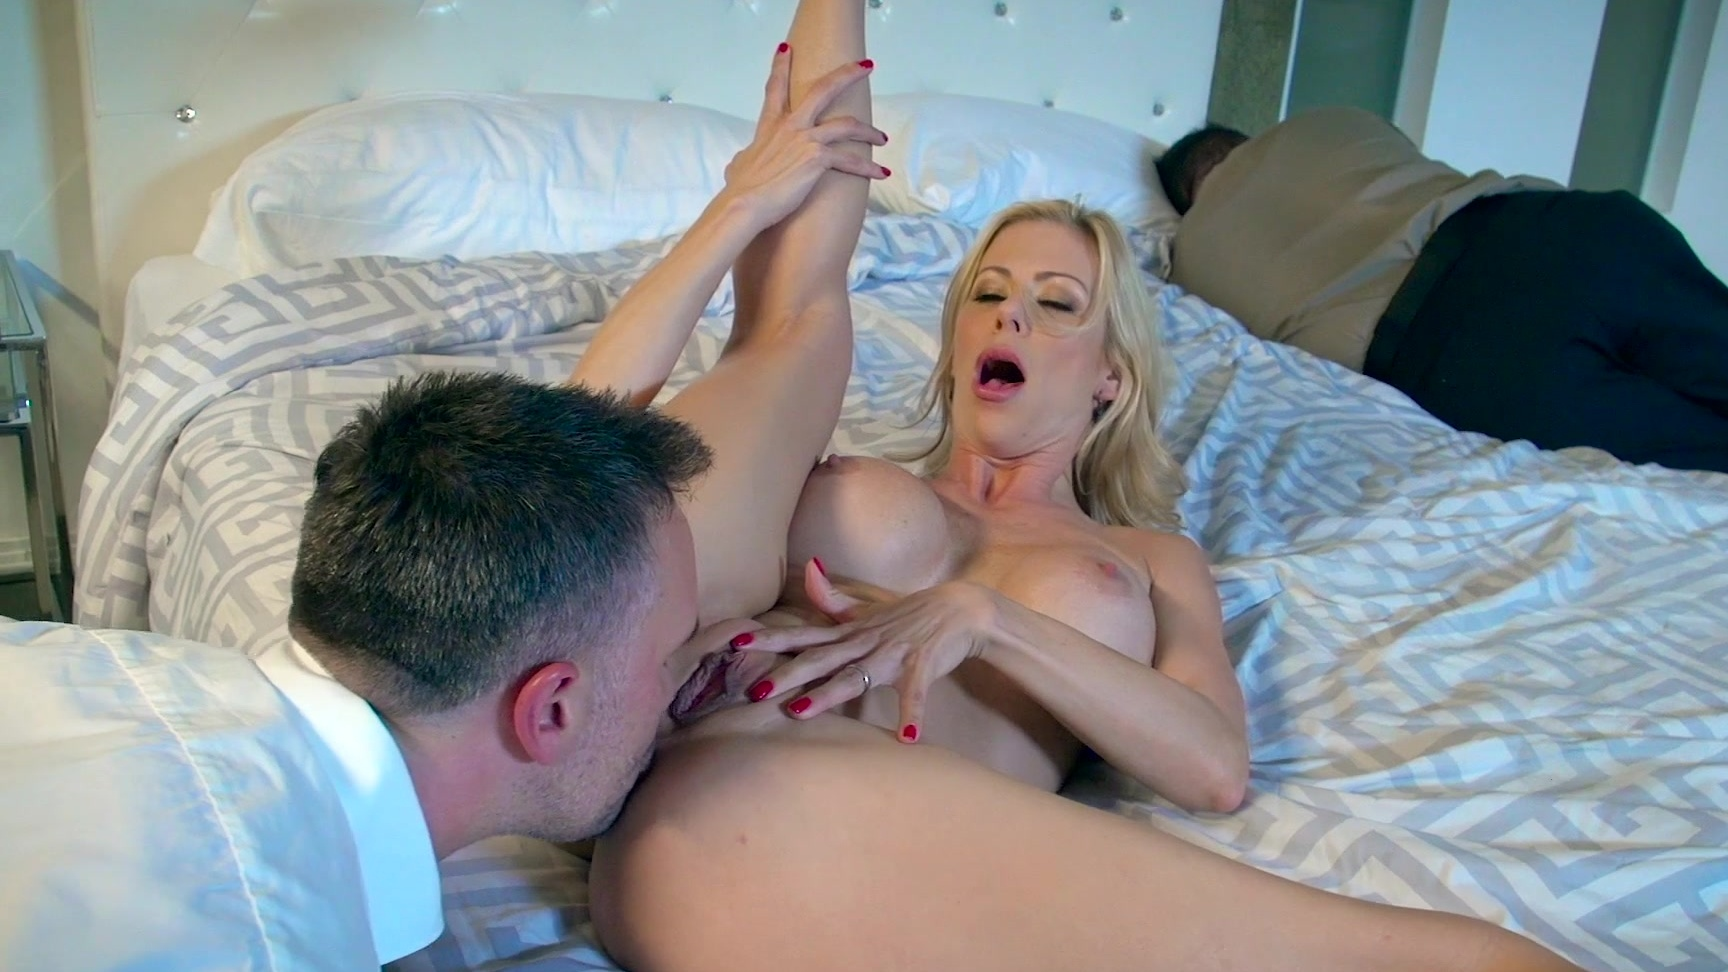 MILF Alexis Fawx fucked by room service next to sleeping husband